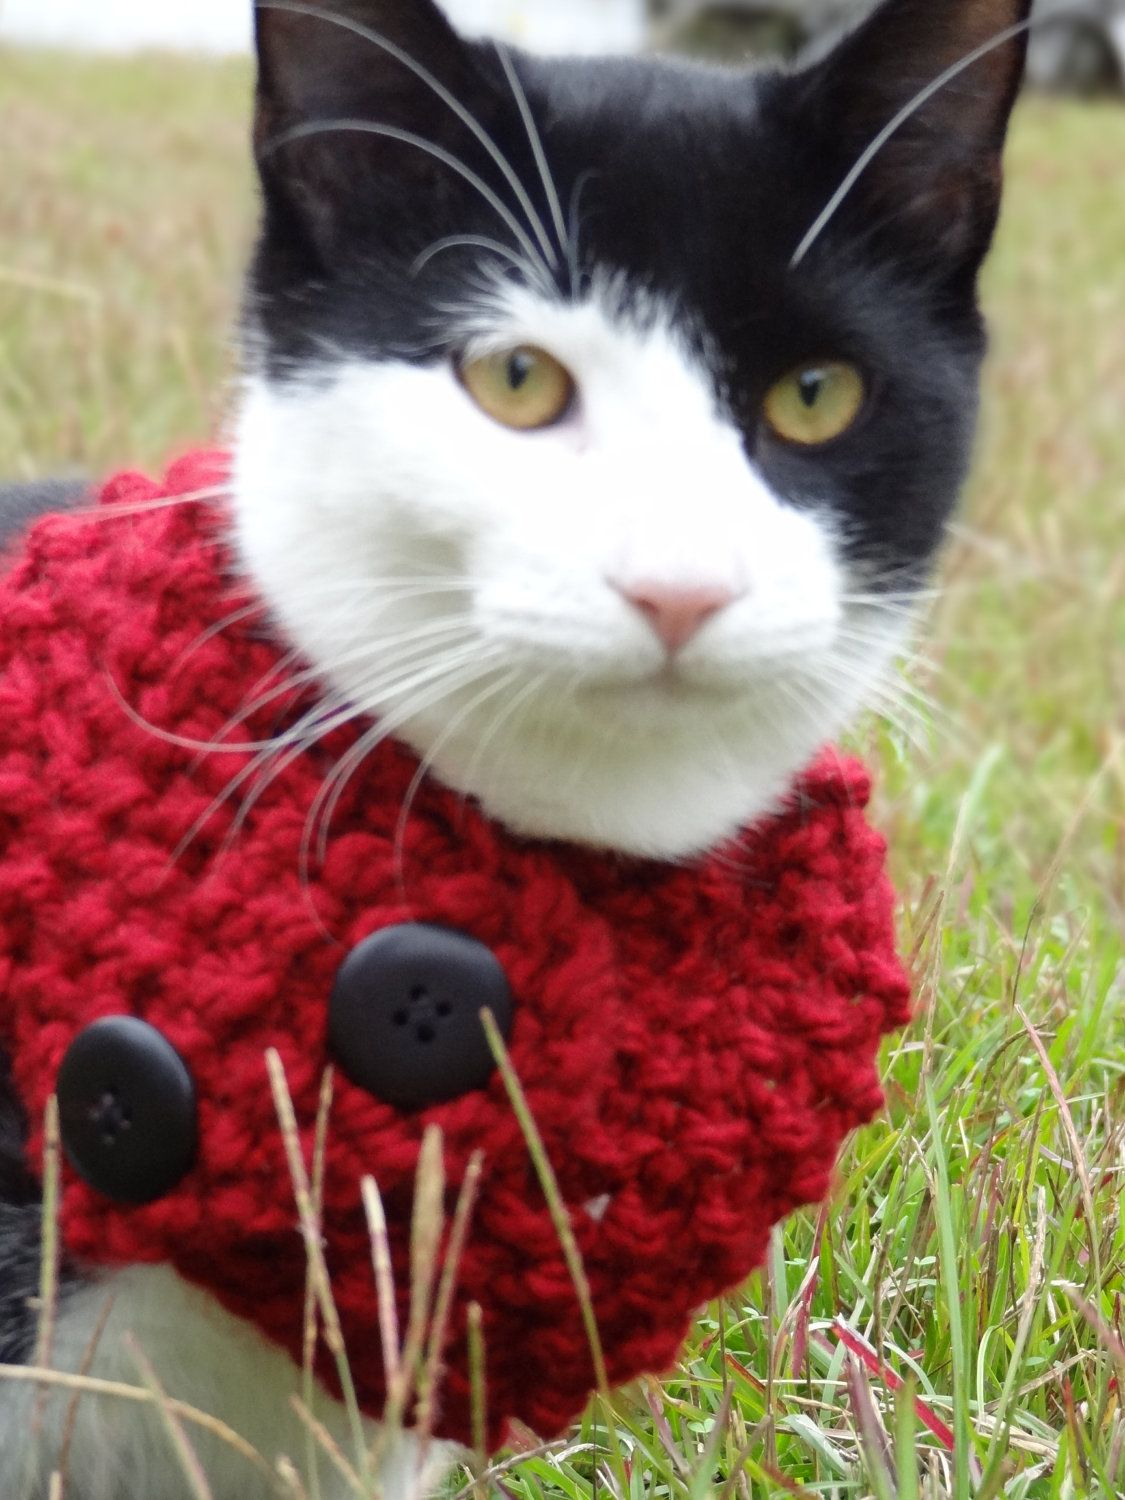 Cat Dog Cowl Scarf Custom Colors Size Large By Iheartneedlework 35 00 Small Dogs Cat Accessories